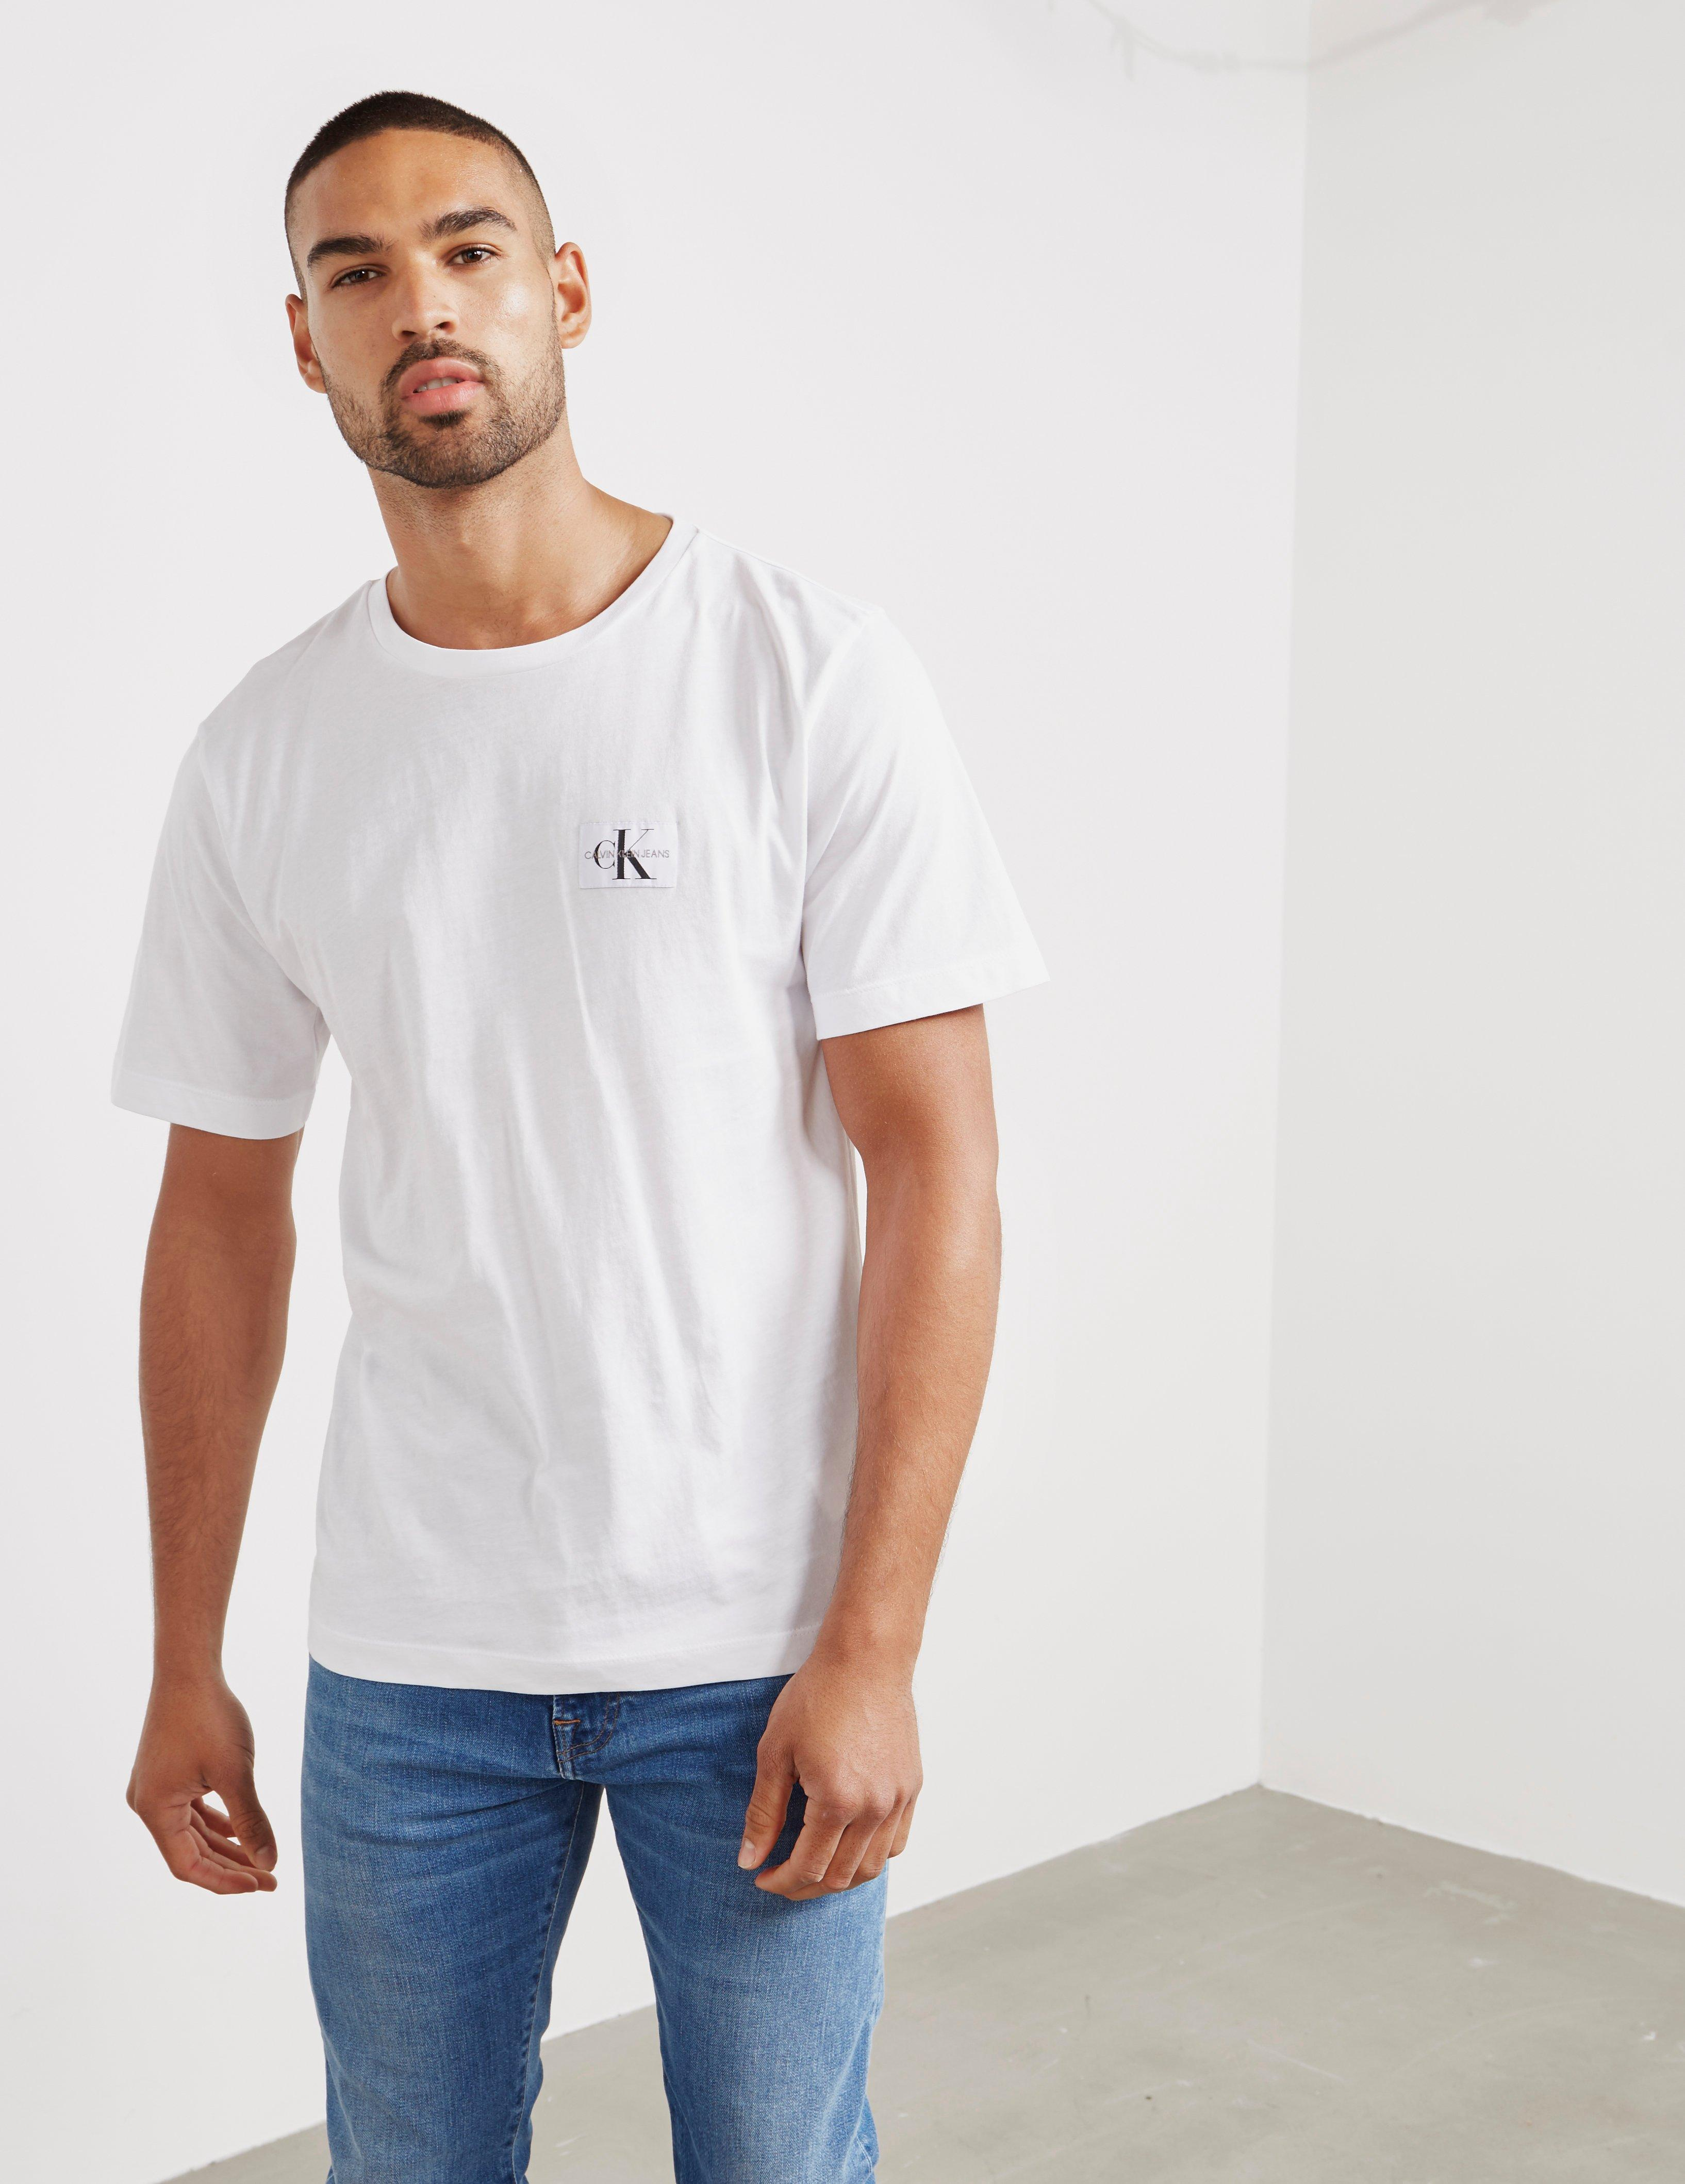 d4d708f93 Lyst - Calvin Klein Mens Monogram Short Sleeve T-shirt White in ...